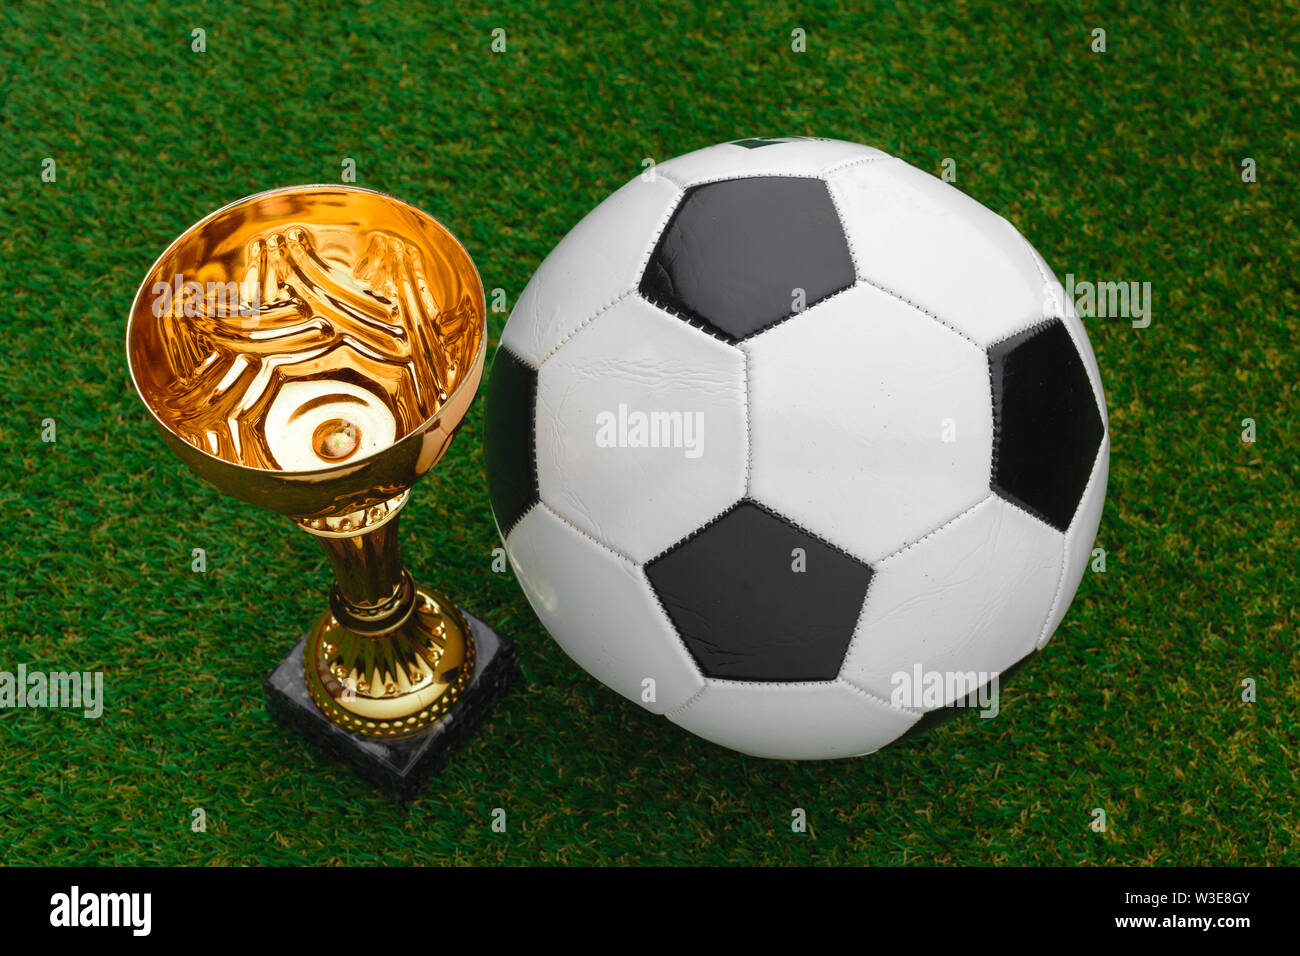 Football cup with football ball on grass - Stock Image